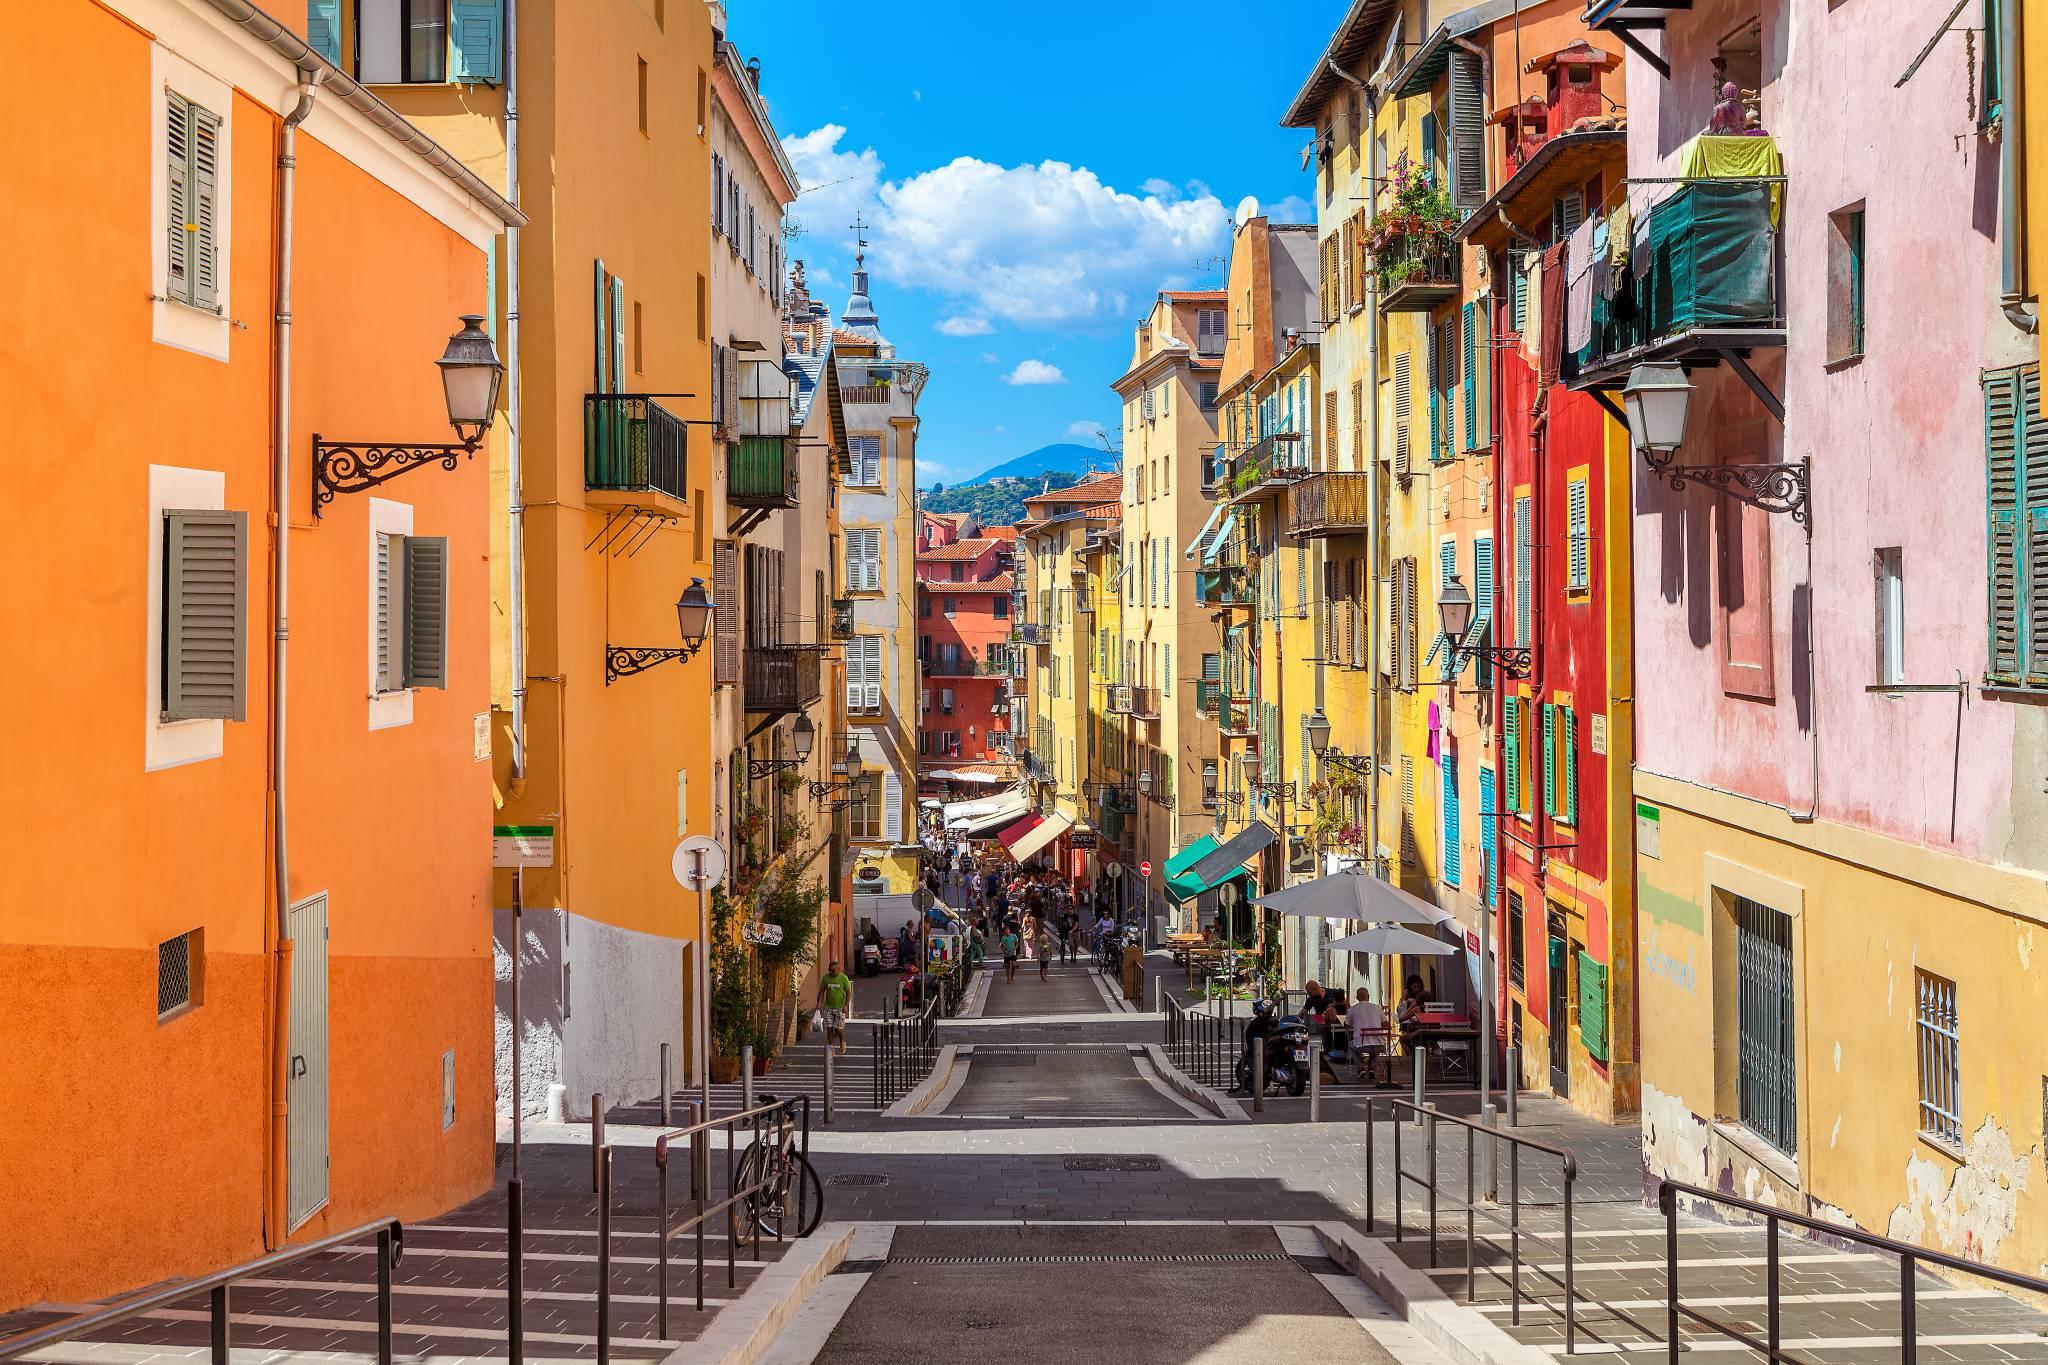 Travel to Nice with eTips Travel Guide